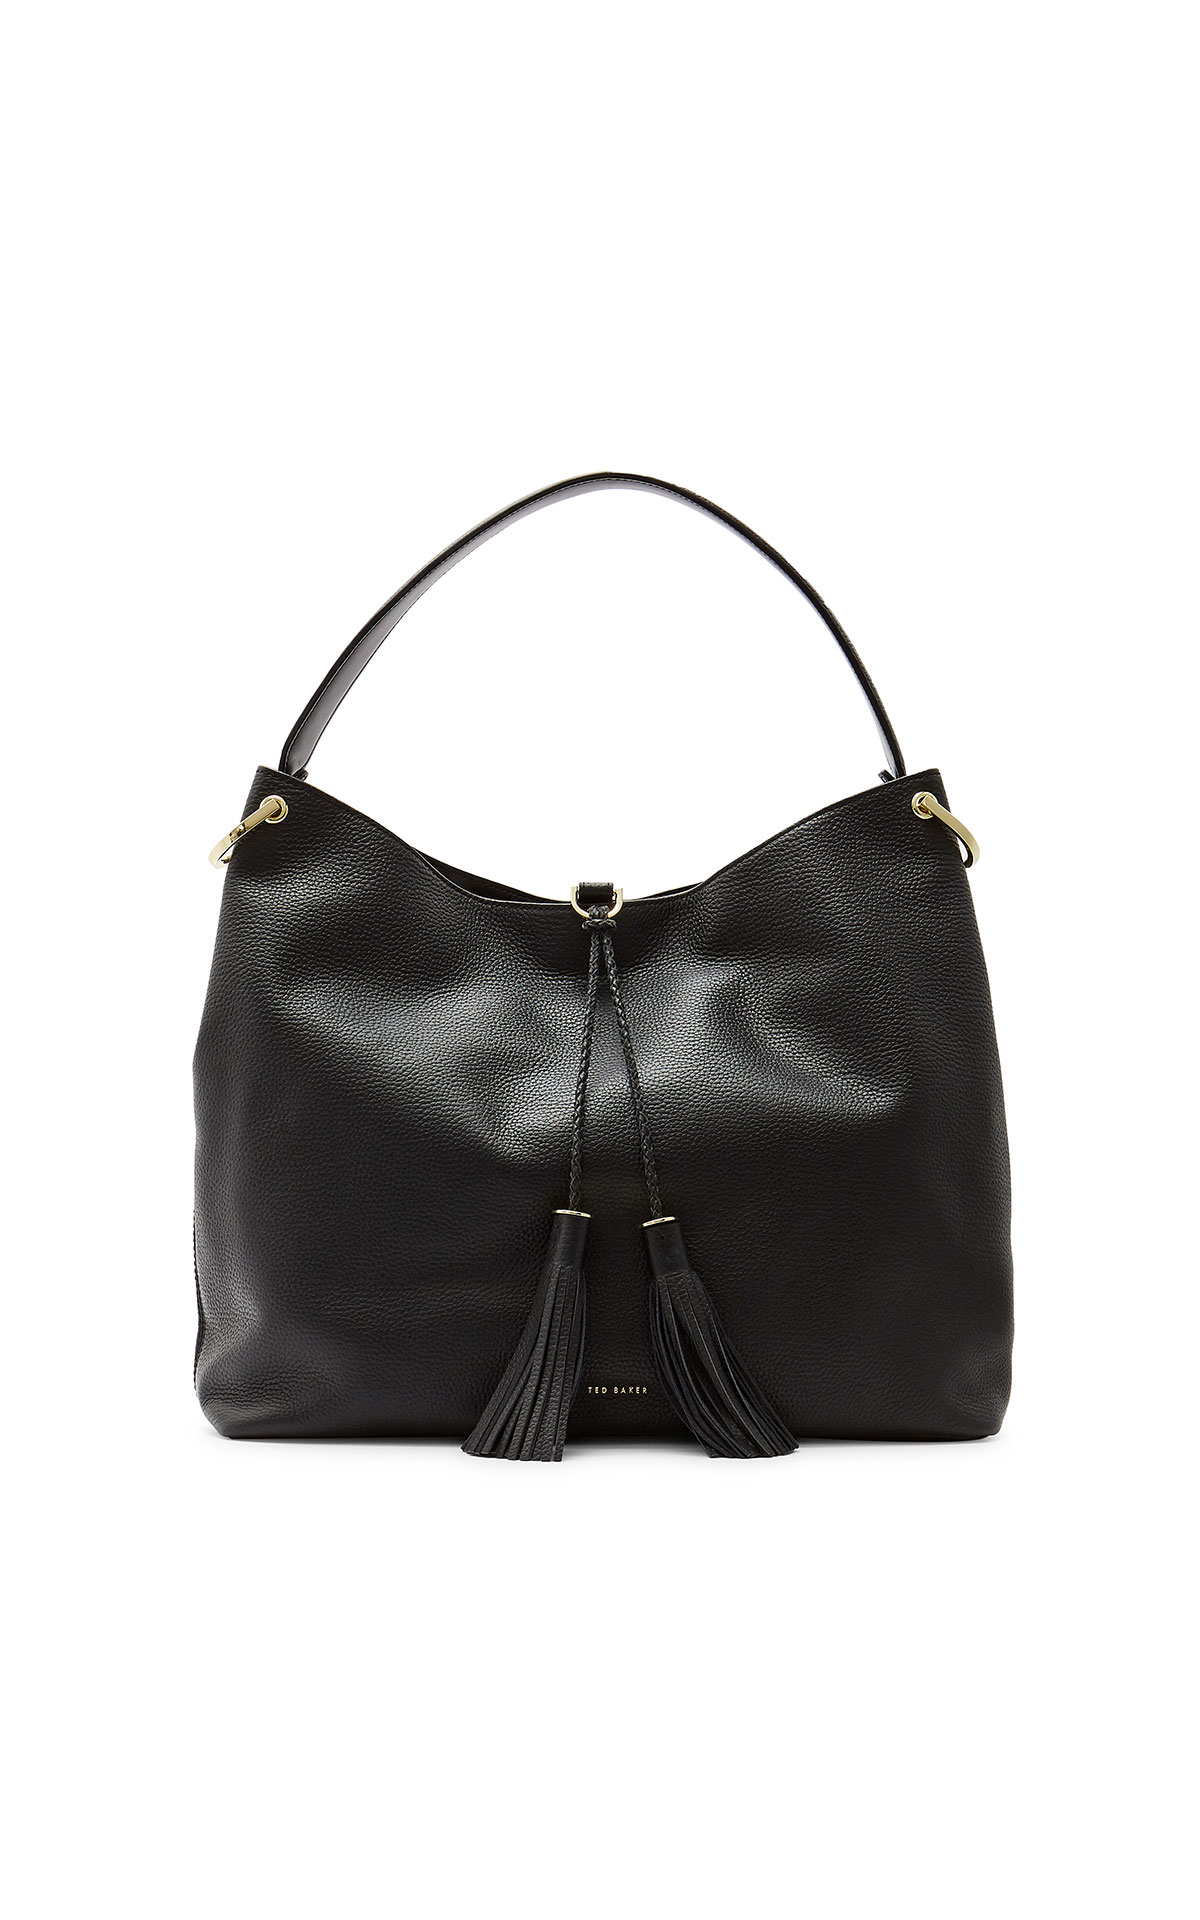 Ted Baker Demmi black tassel hobo bag from Bicester Village